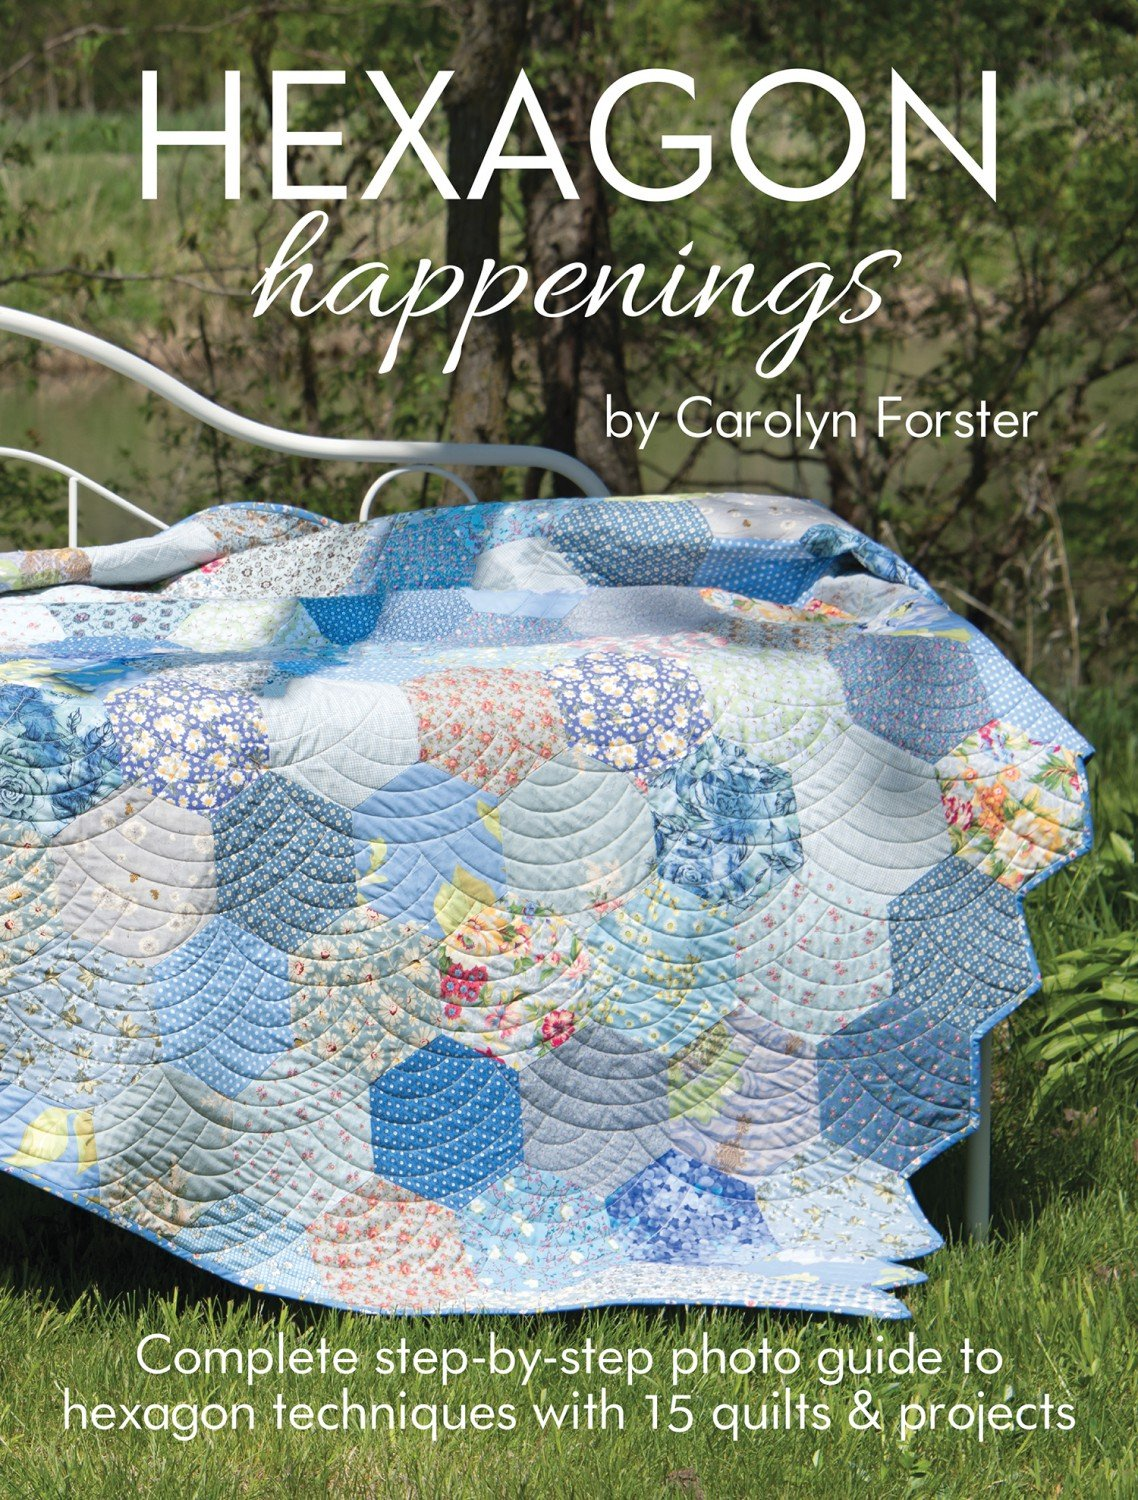 Hexagon Happenings- Carolyn Forster